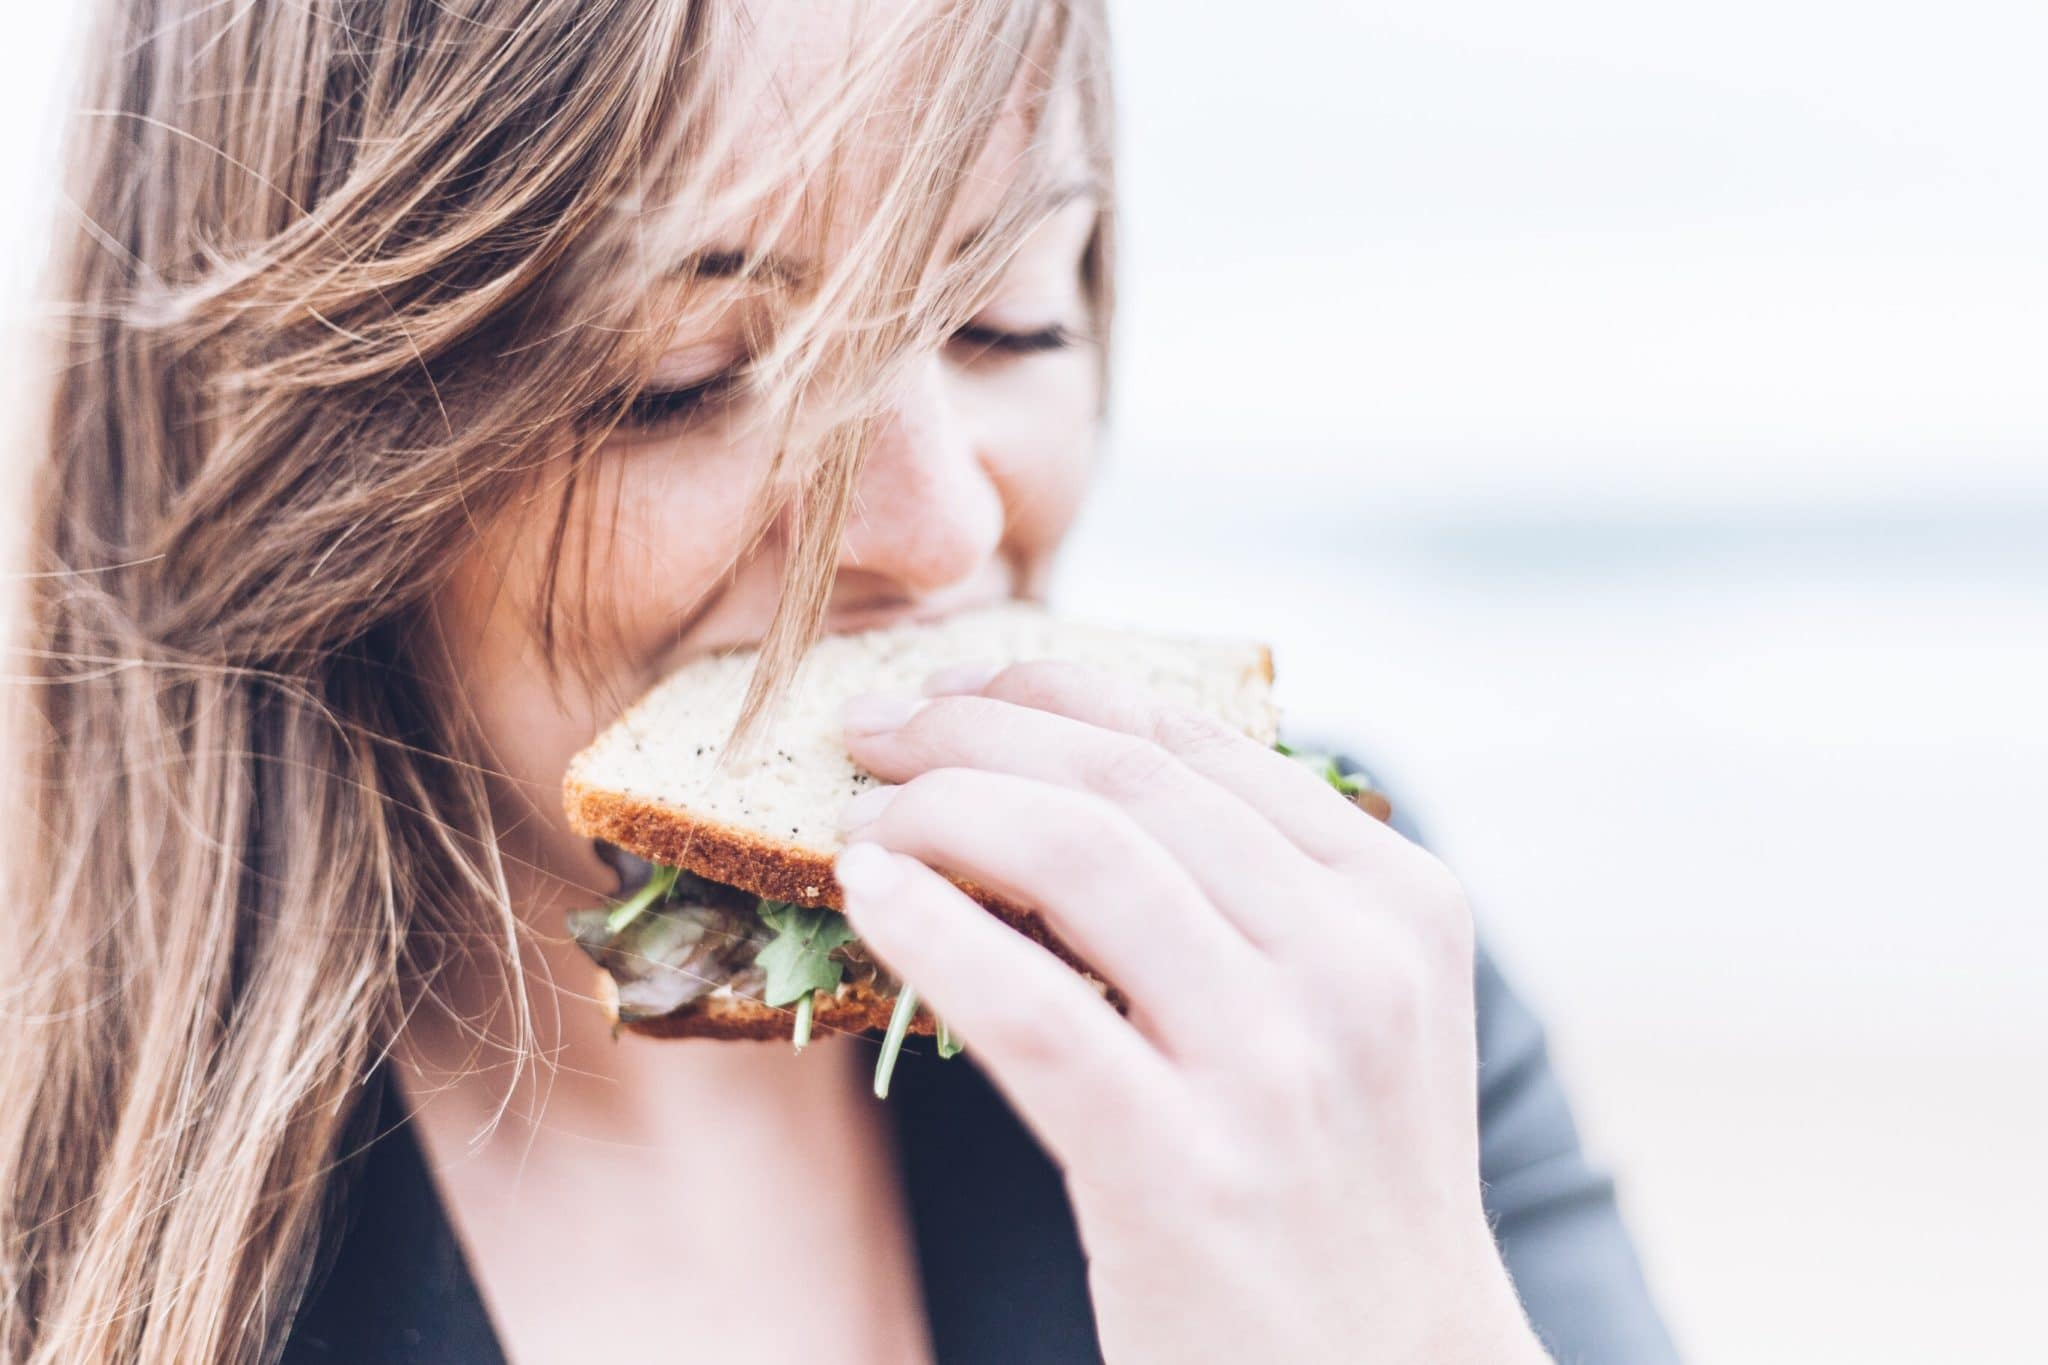 woman with PCOS taking a bite out of sandwich